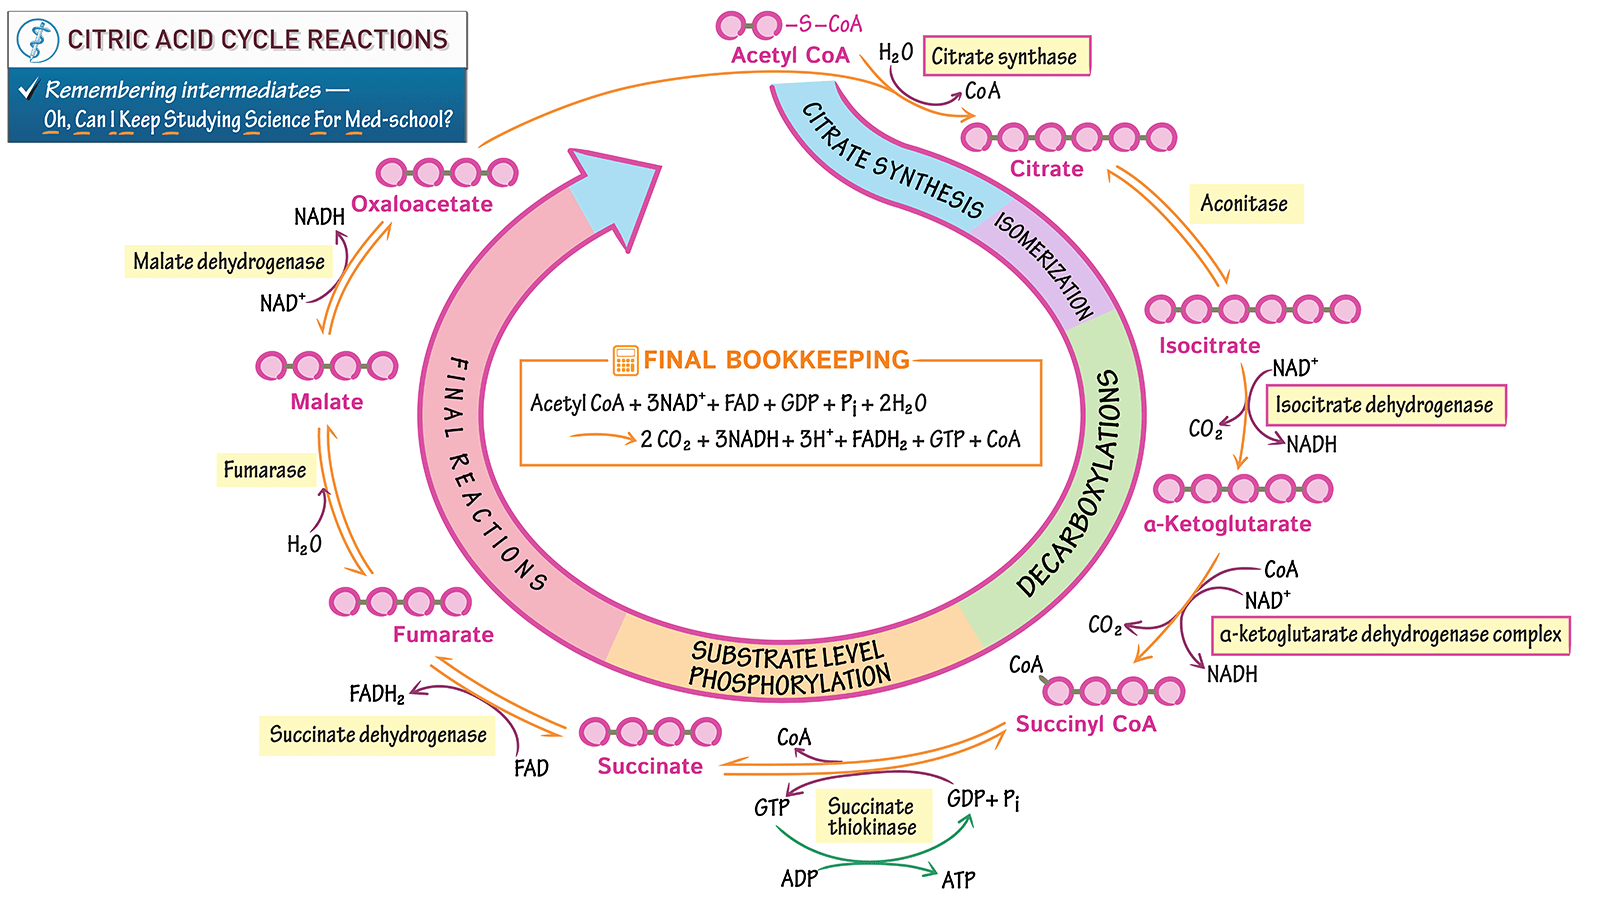 Cell Biology Reactions Of The Citric Acid Cycle